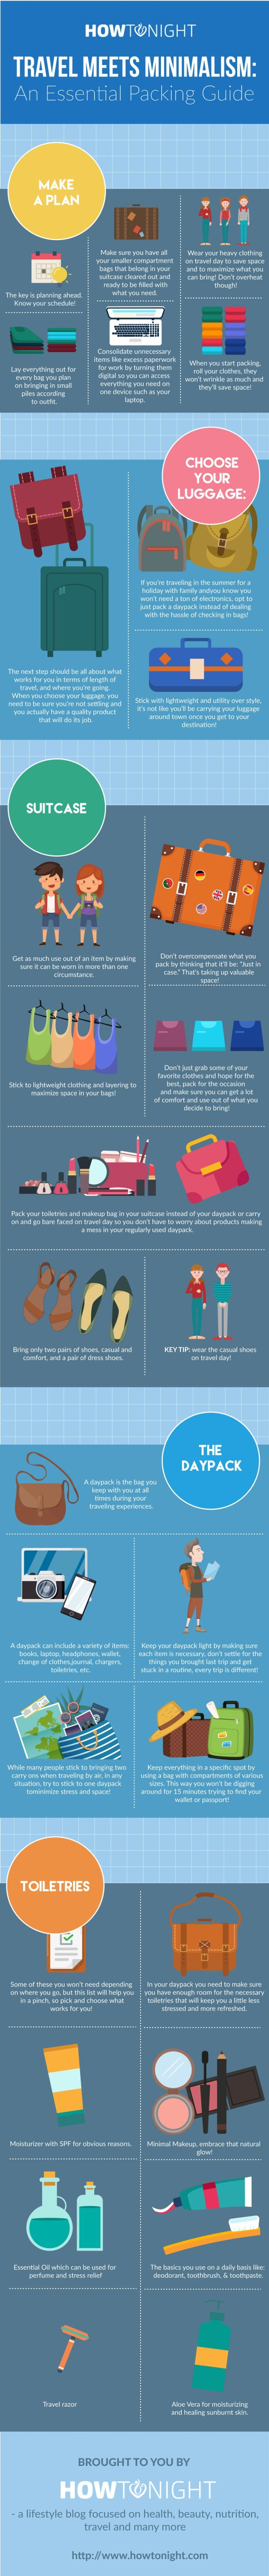 packing-guide